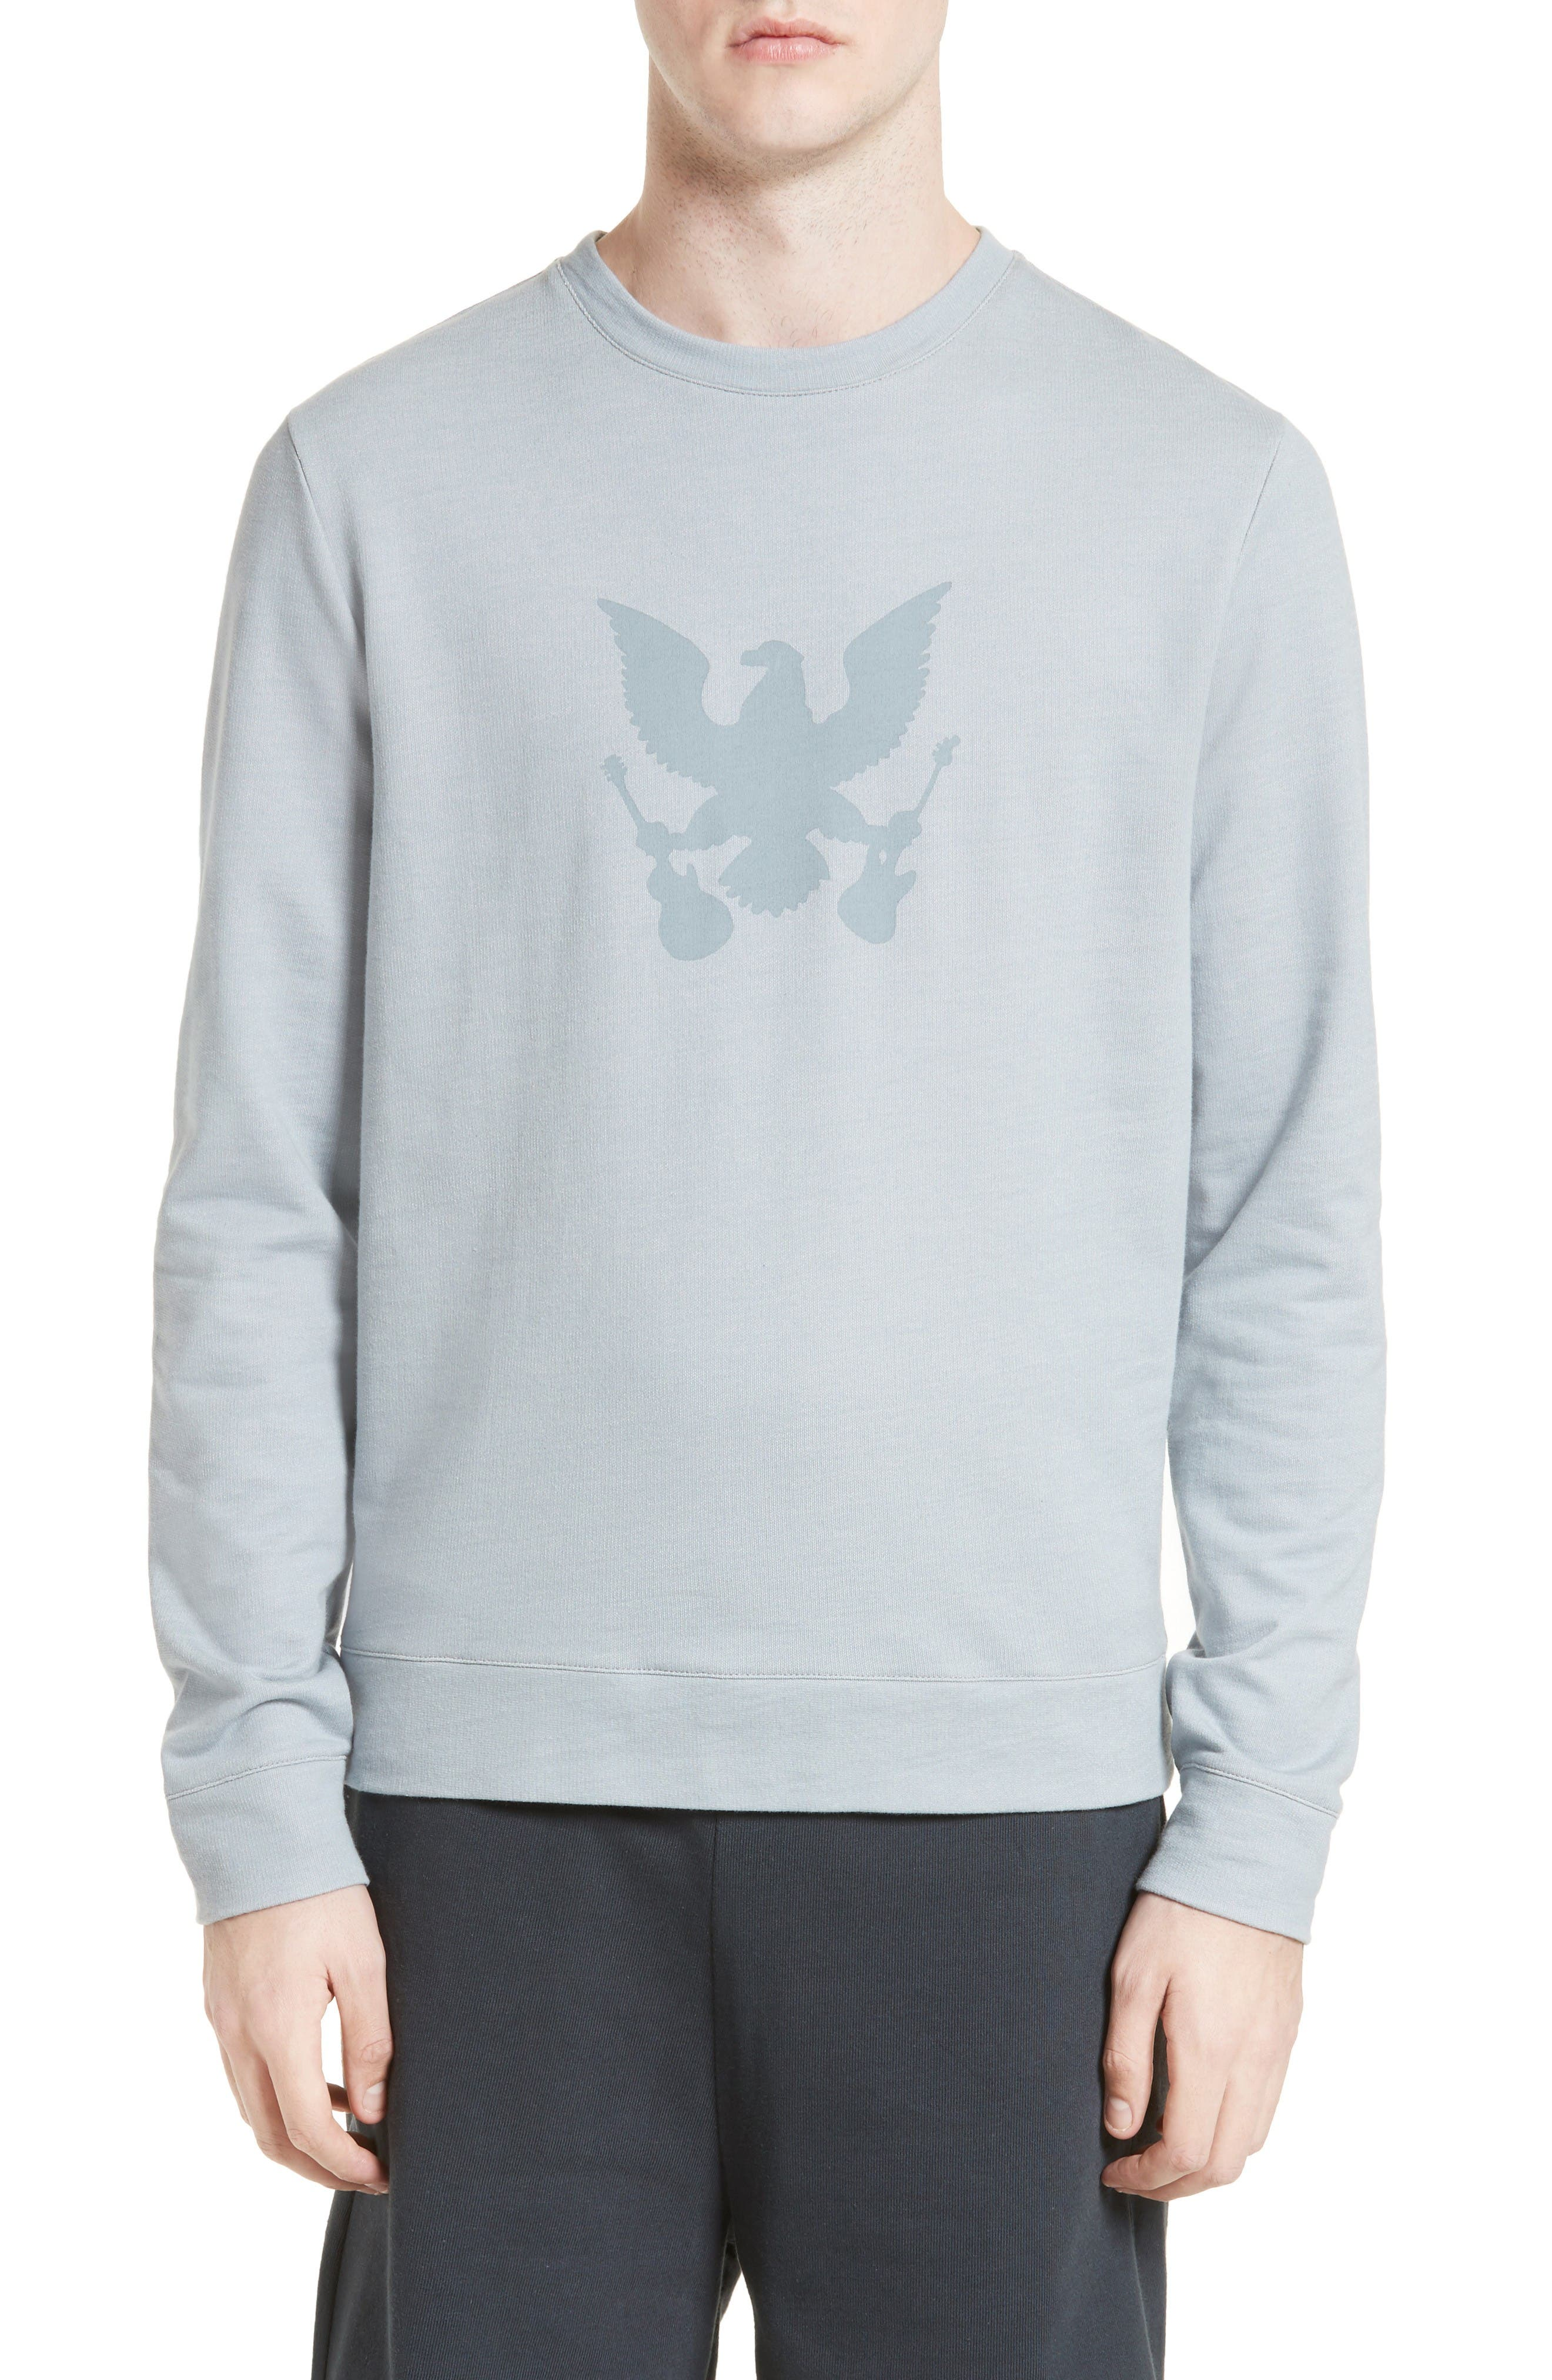 Grand Aigle Bird Sweatshirt,                         Main,                         color, Blue